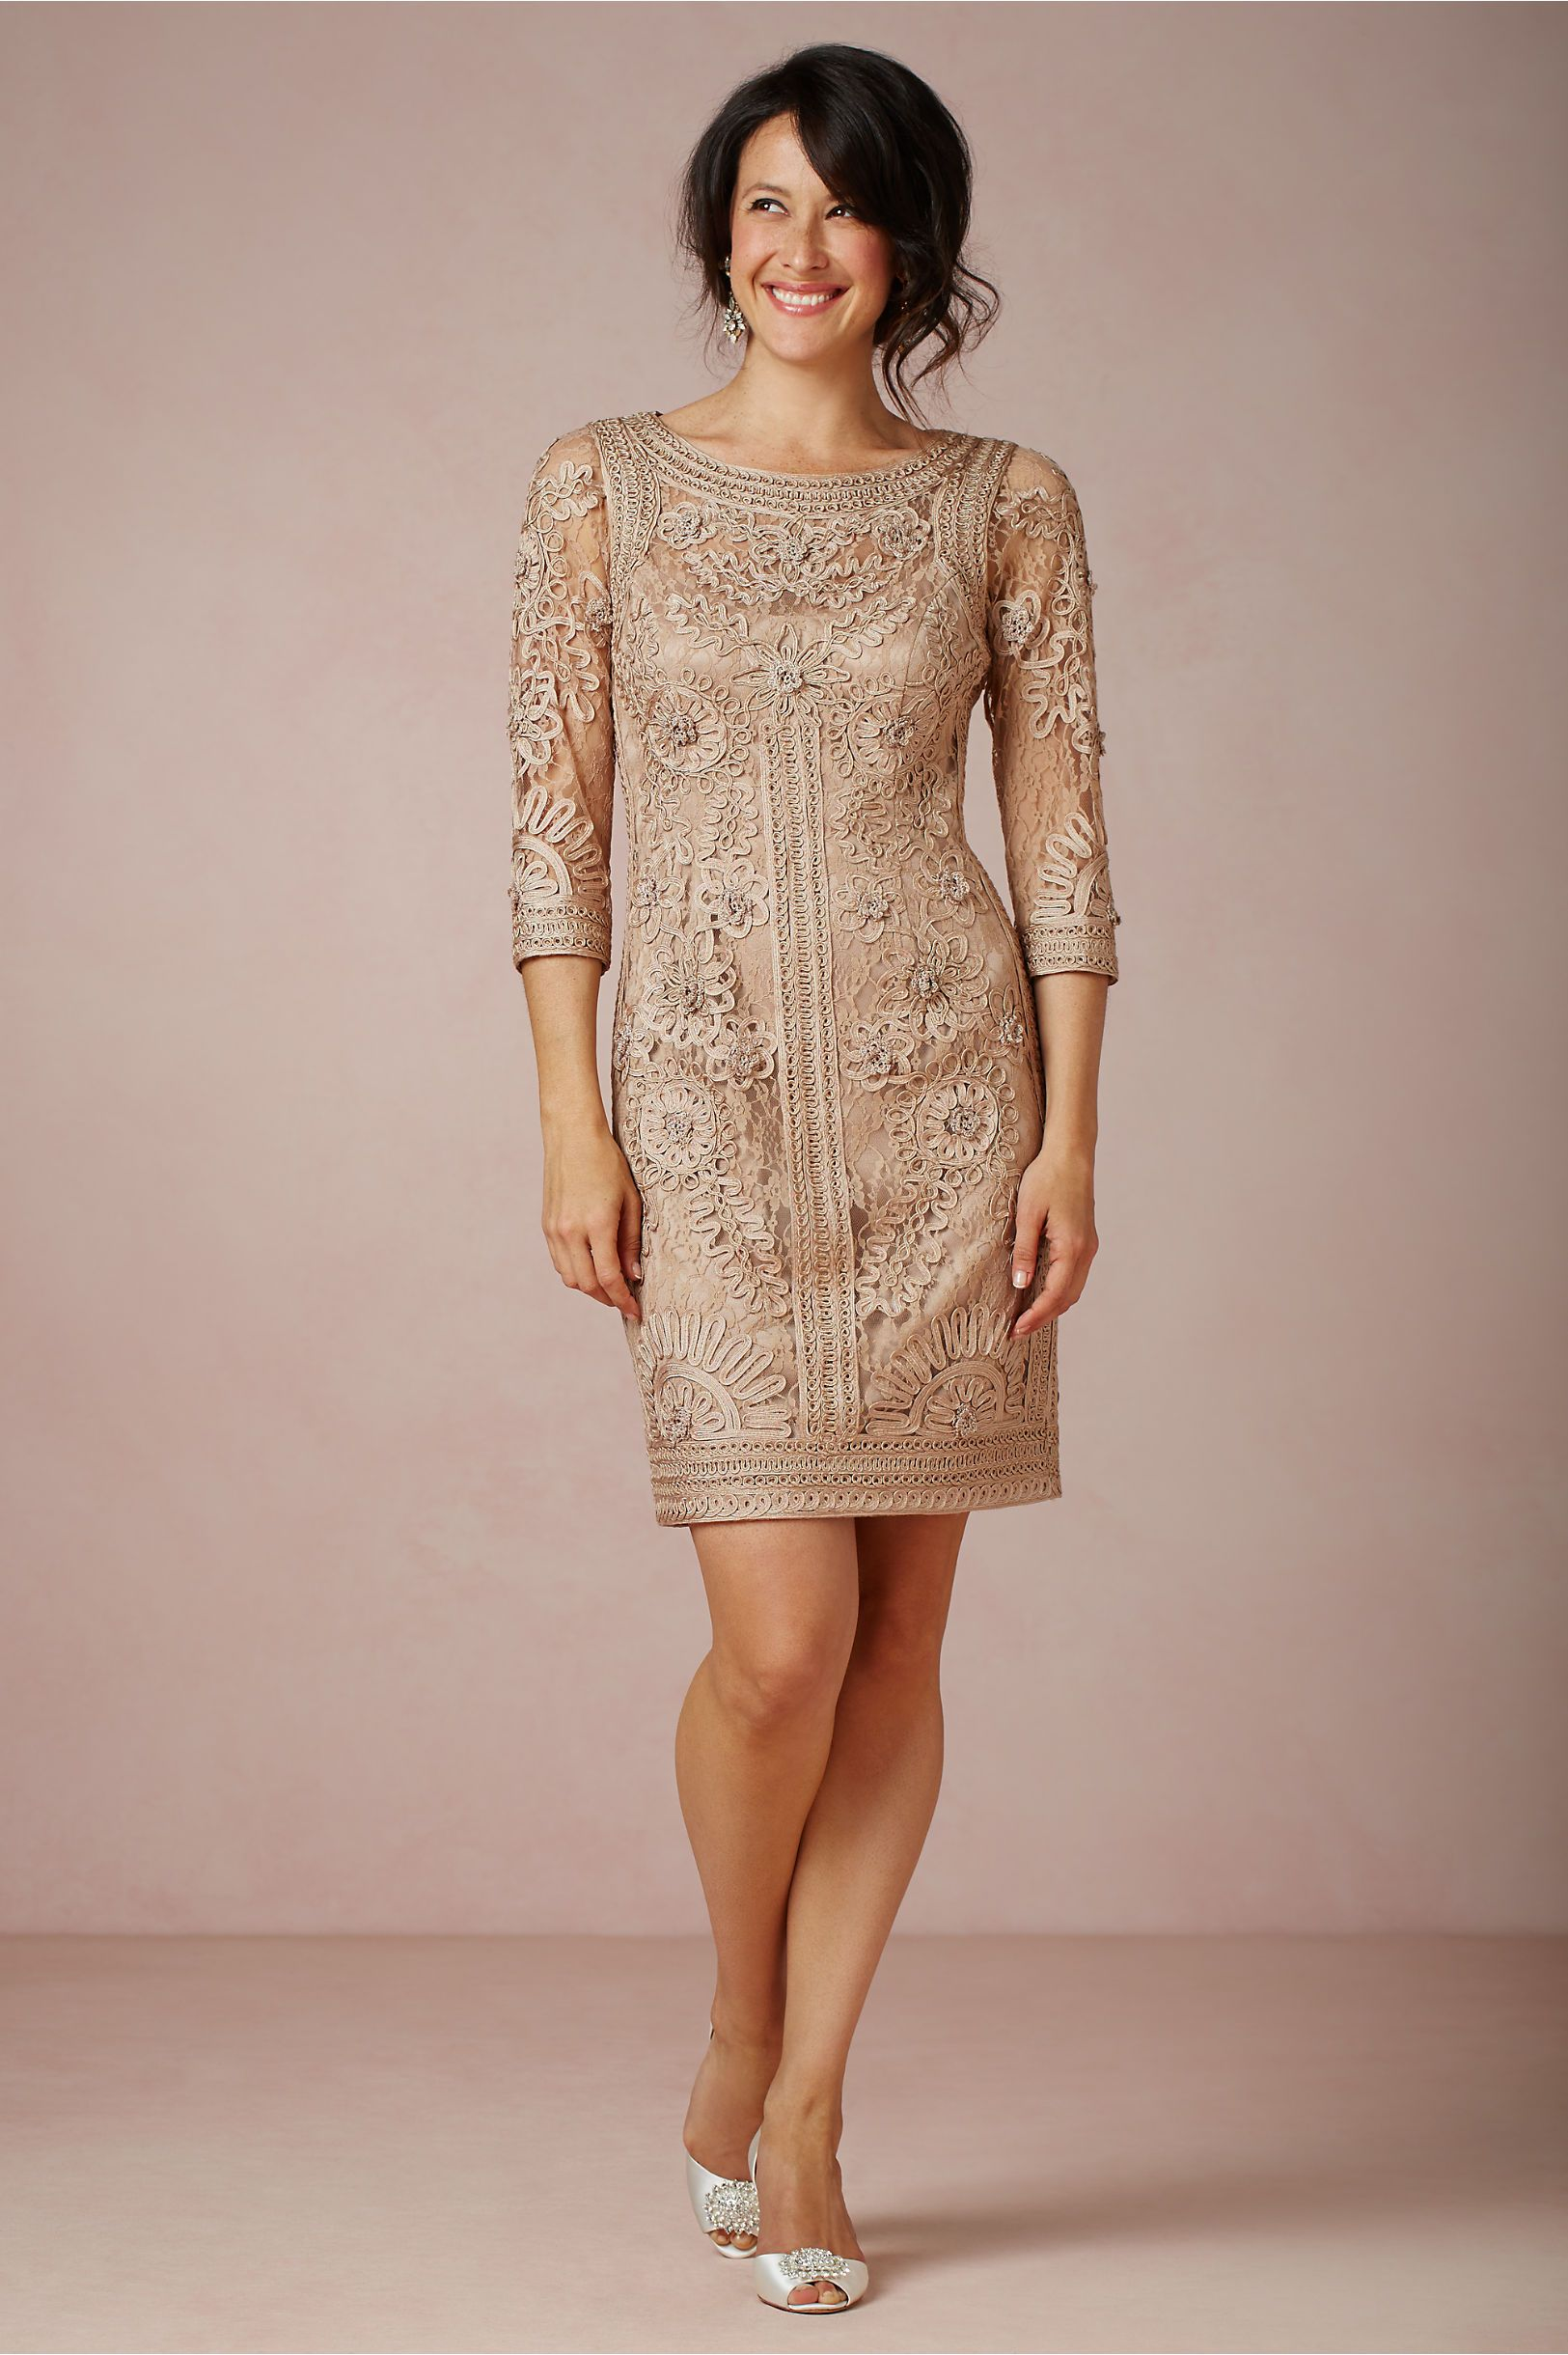 Matisse dress in sale at bhldn mother of the bride for Wedding guest dresses sale